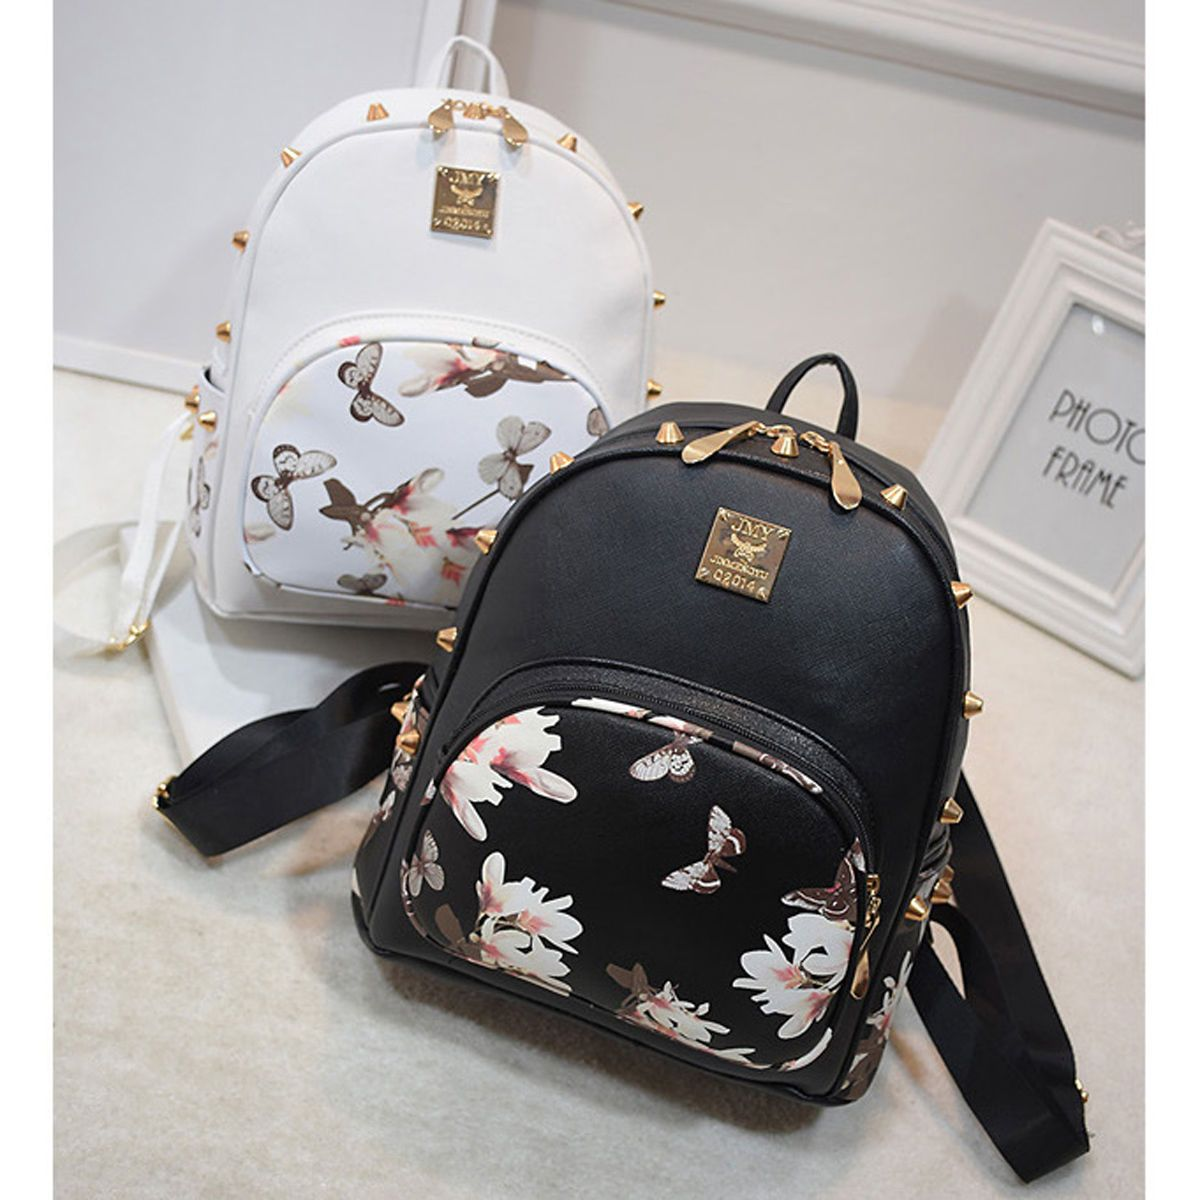 4cd4e6eb5b6b New Girl Leather School Bag Travel Cute Backpack Satchel Women Shoulder  Rucksack | eBay